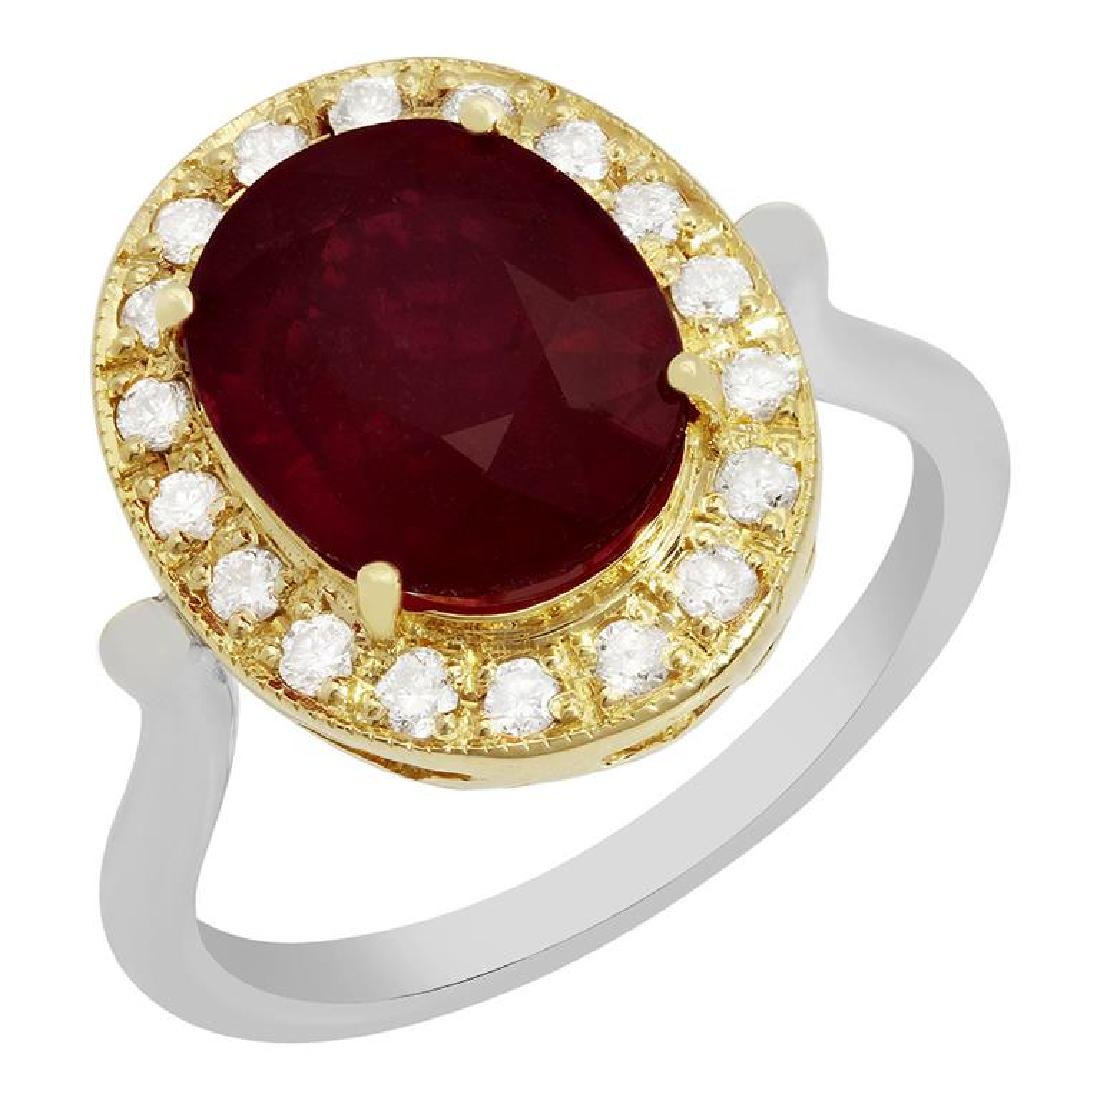 14k Yellow & White Gold 5.50ct Ruby 0.42ct Diamond Ring